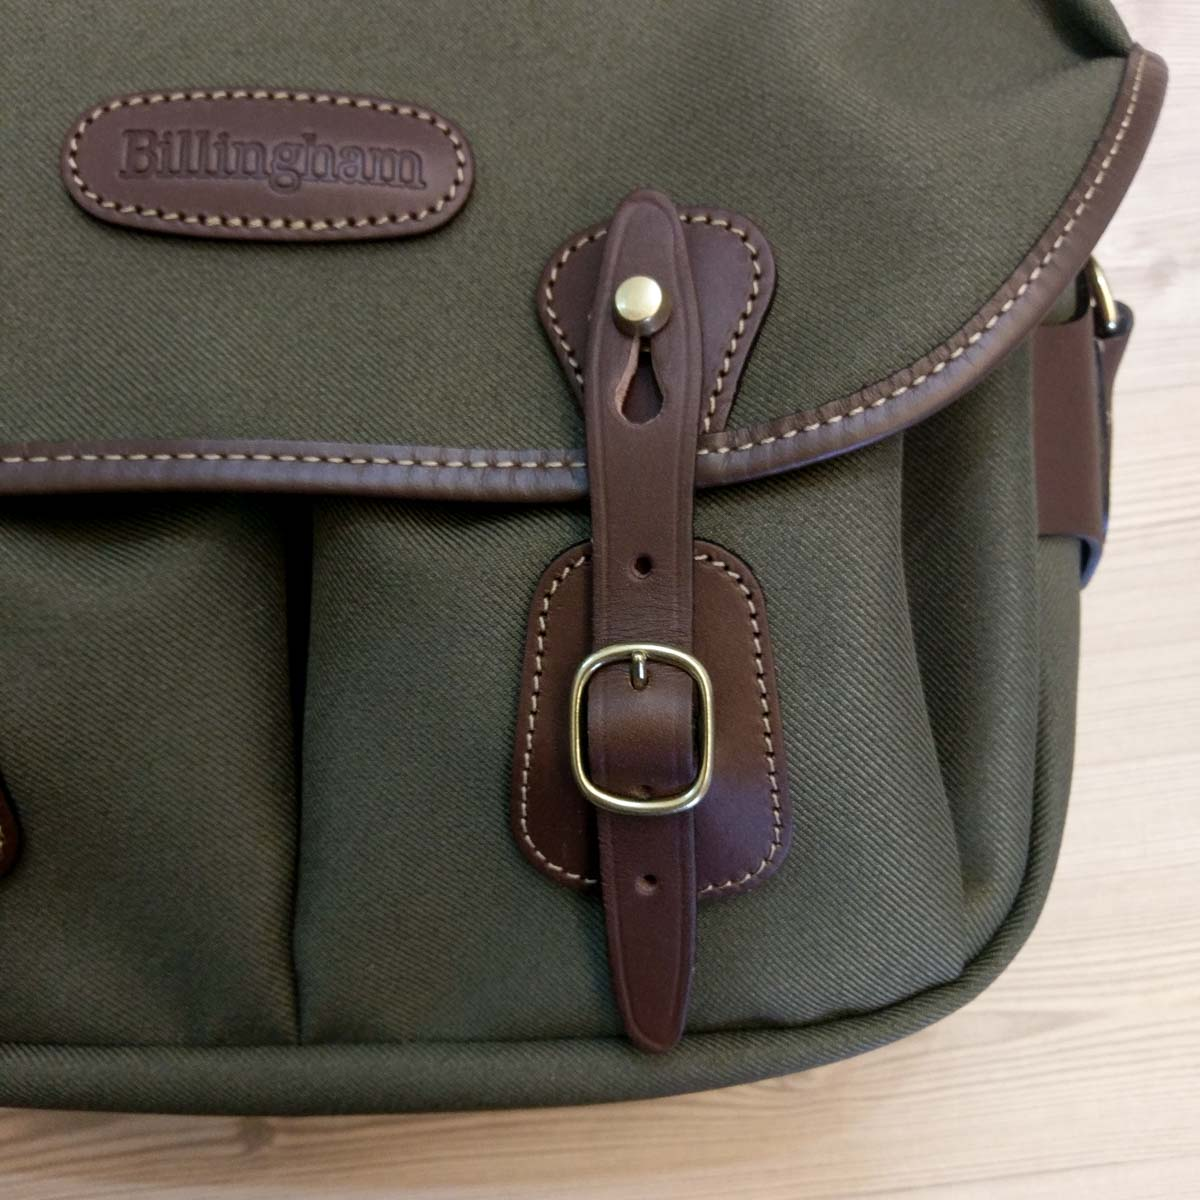 Billingham Hadley Small Pro - Quick release buckles